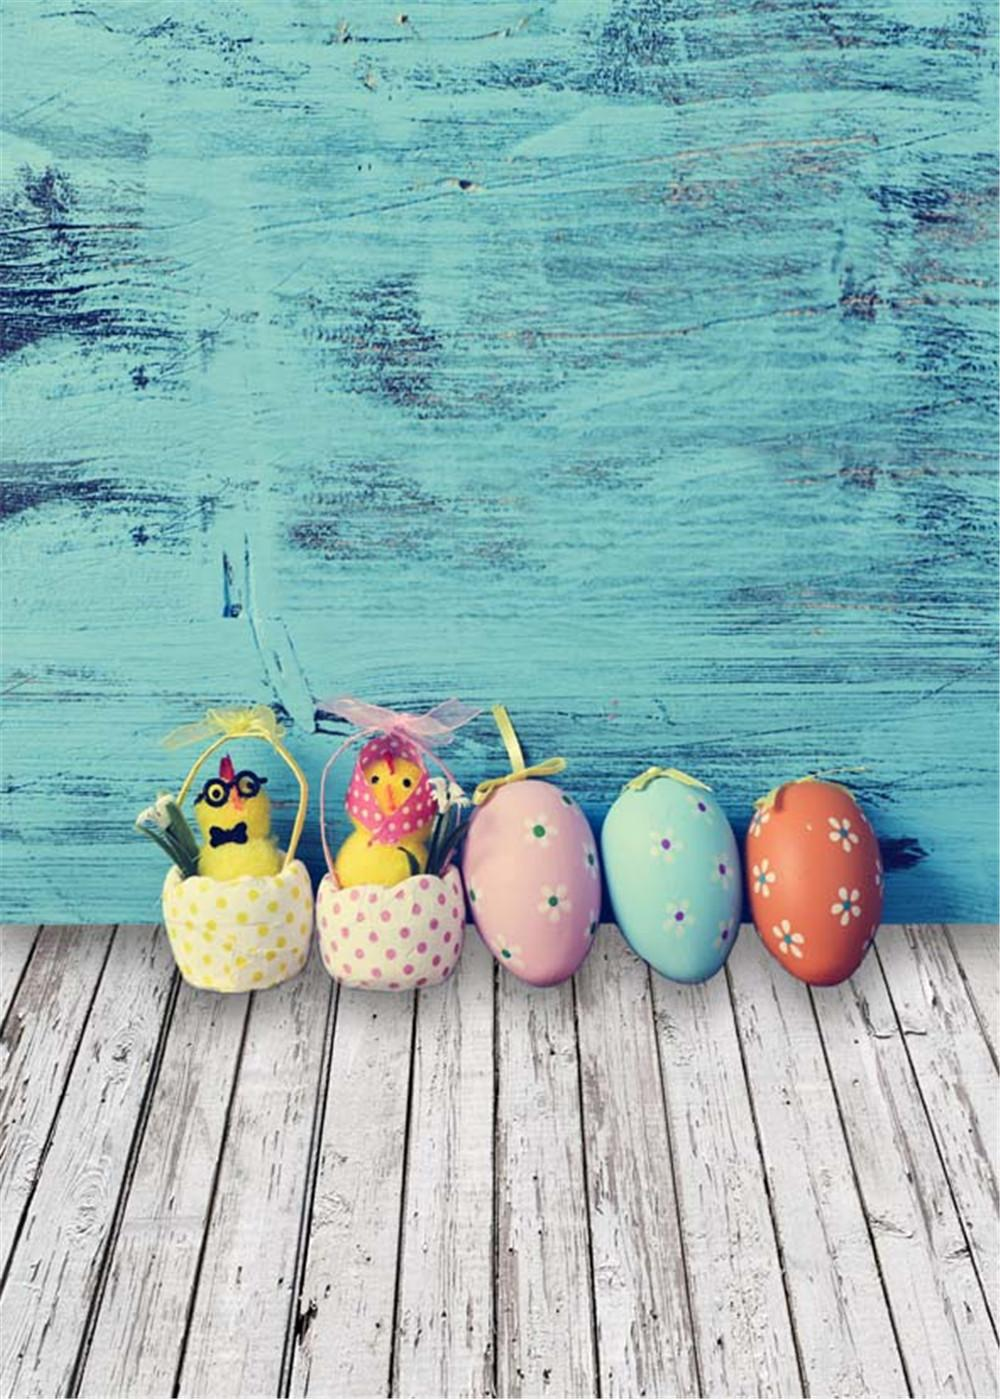 Blue Painted Wooden Wall Photography Backdrops Easter Eggs Baby Newborn Photo Props Vinyl Fabric Kids Children Studio Background Wood Floor